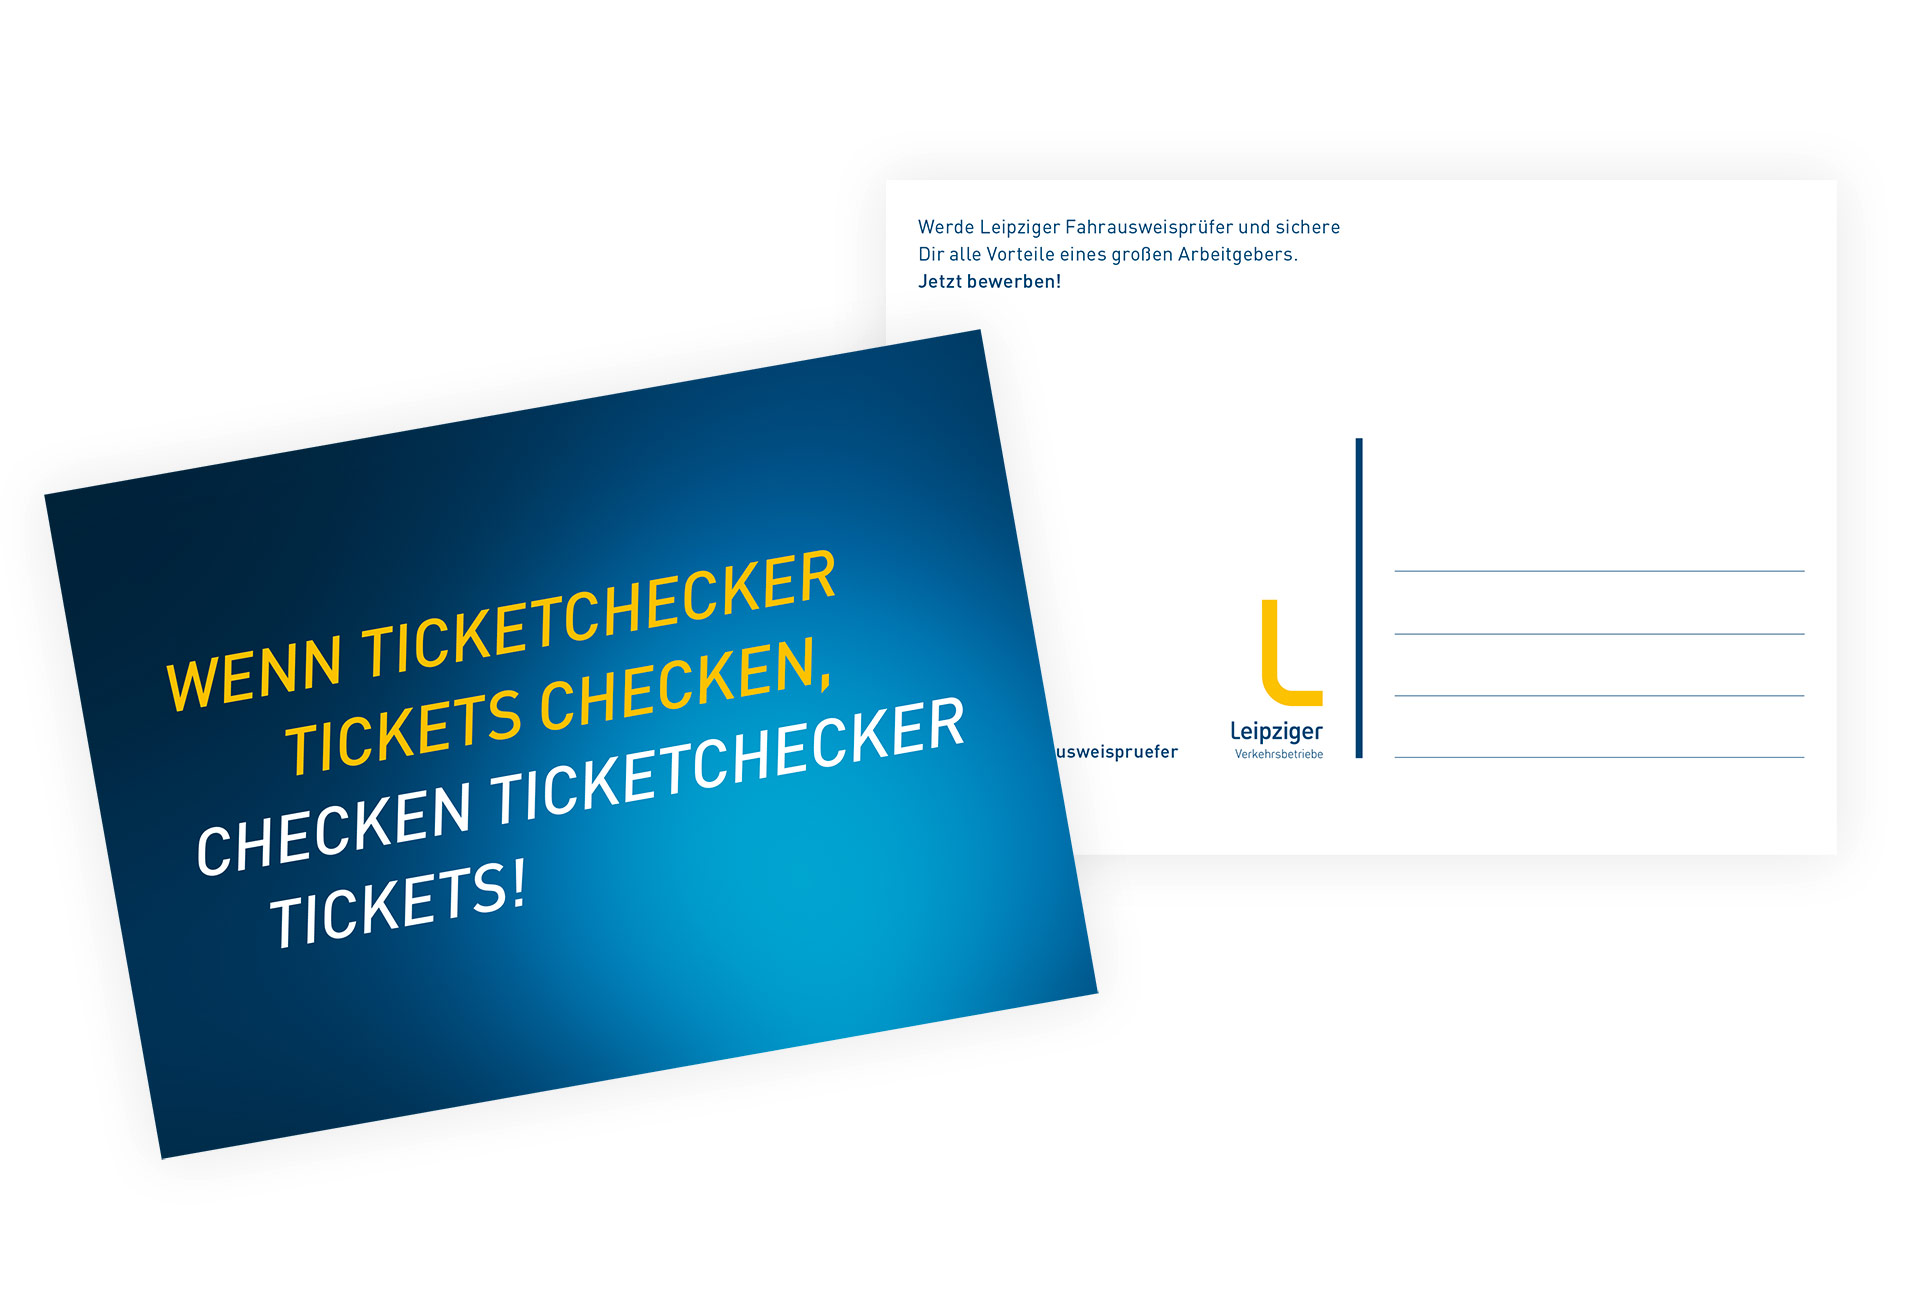 City Cards: Wenn Ticketchecker Tickets checken ...